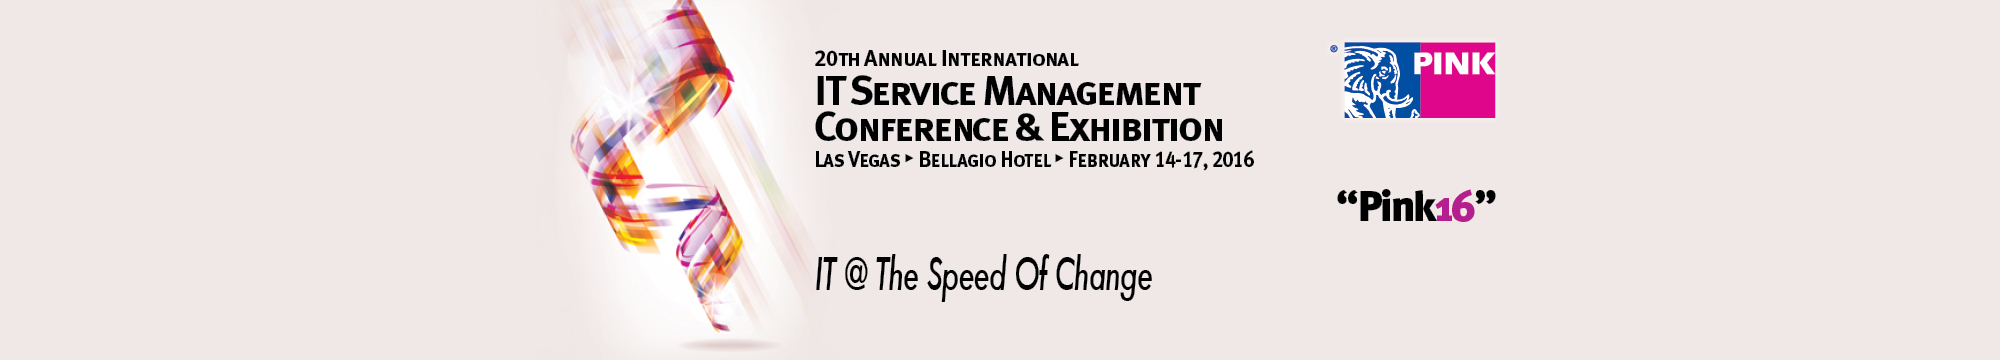 Pink16 - 20th Annual International IT Service Management Conference & Exhibition at The Bellagio Hotel in Las Vegas, Feb 14-17, 2016